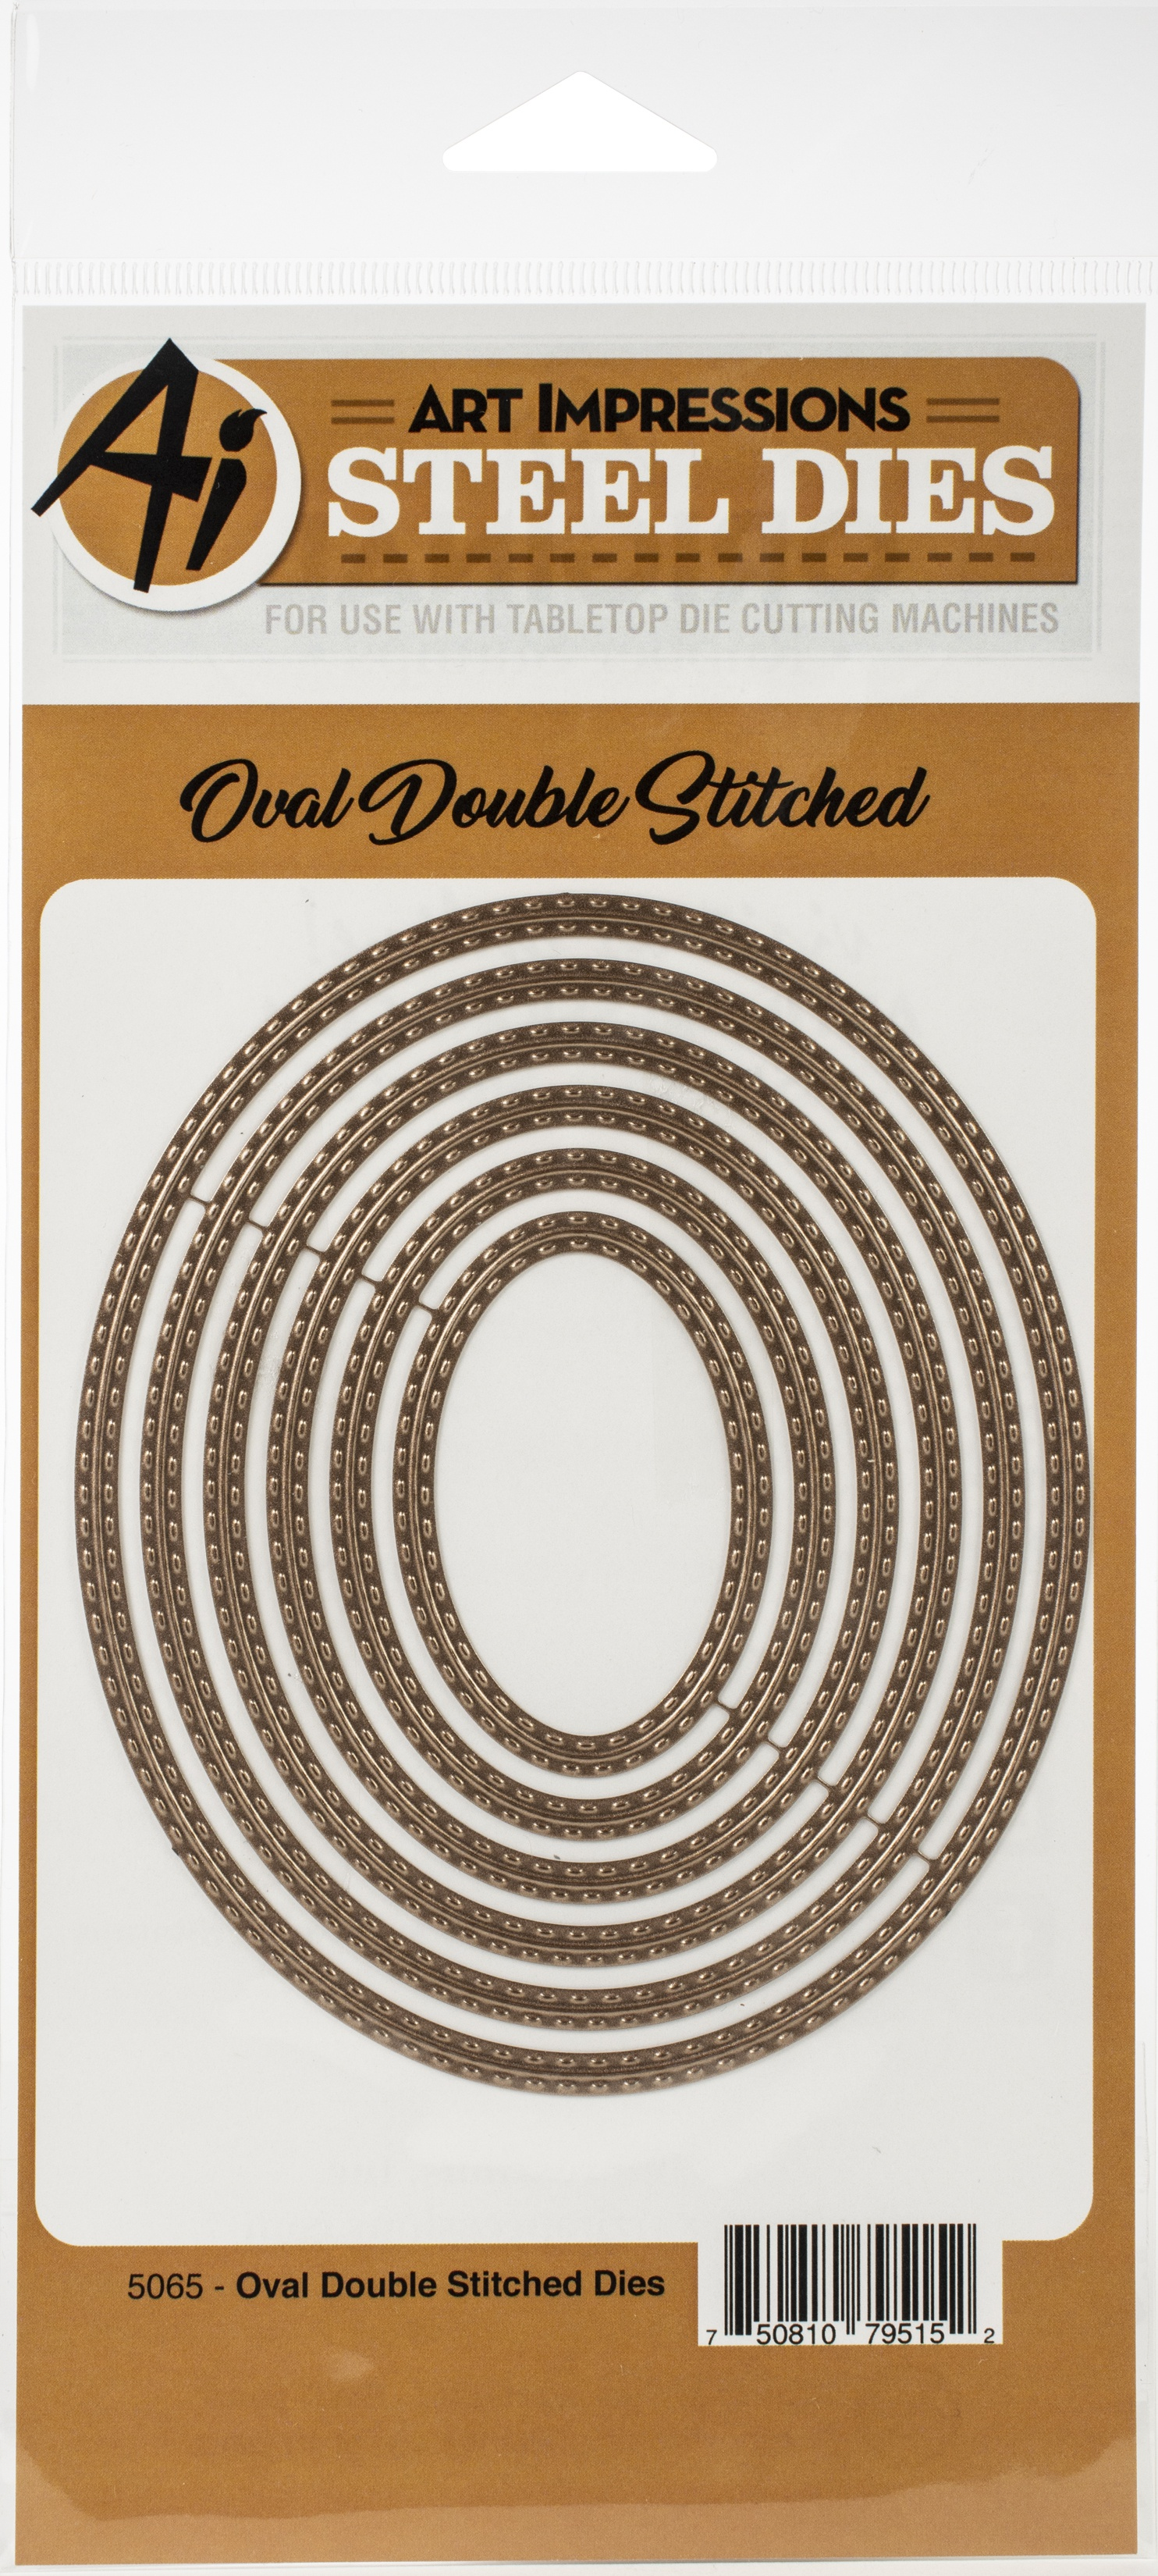 Oval Double Stitched Dies